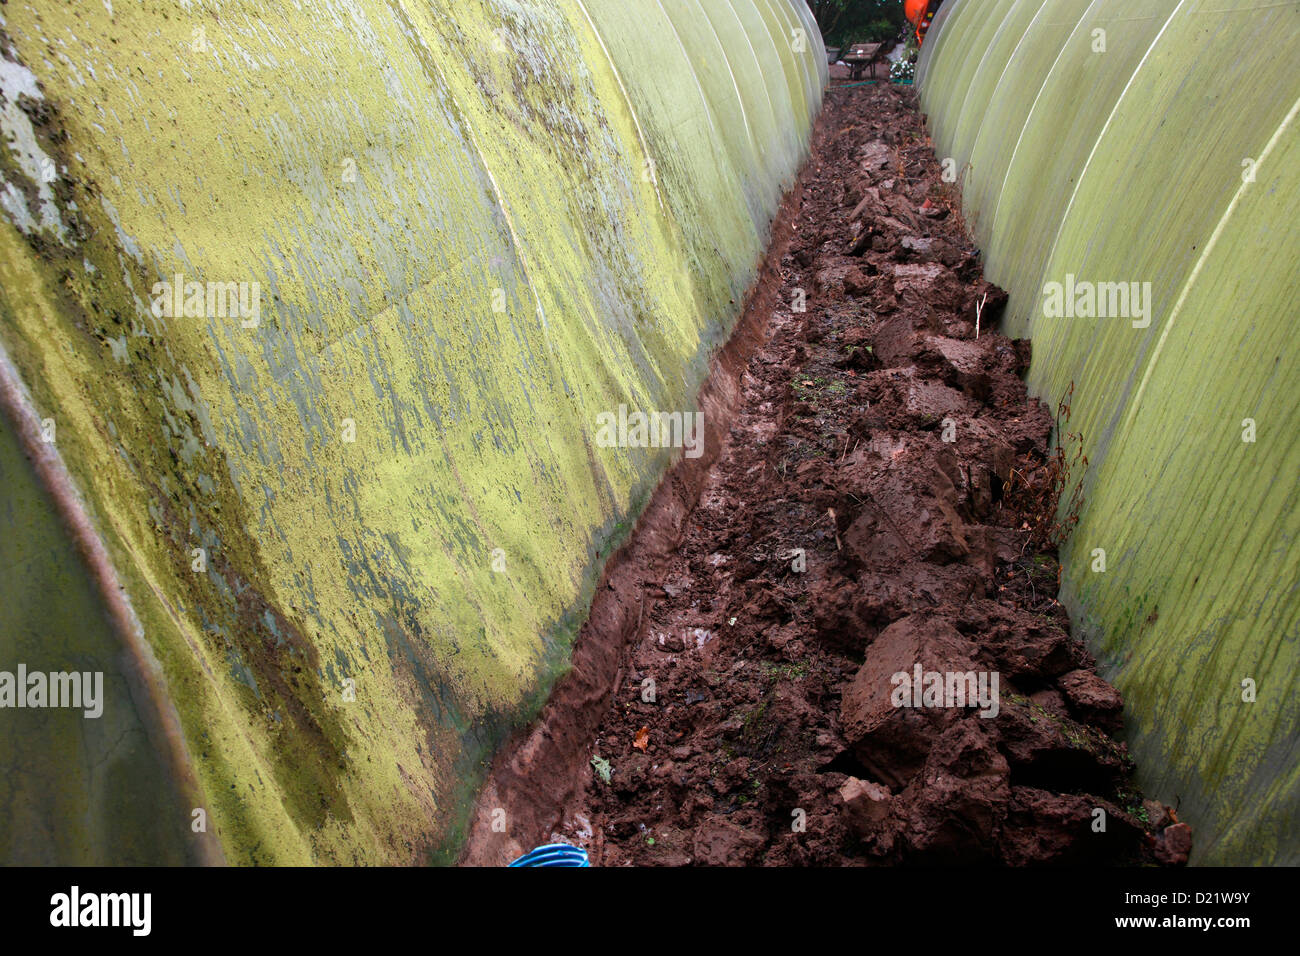 Replacing the polythene cover of a polytunnel - digging out the trench in which the old sheet is buried Stock Photo